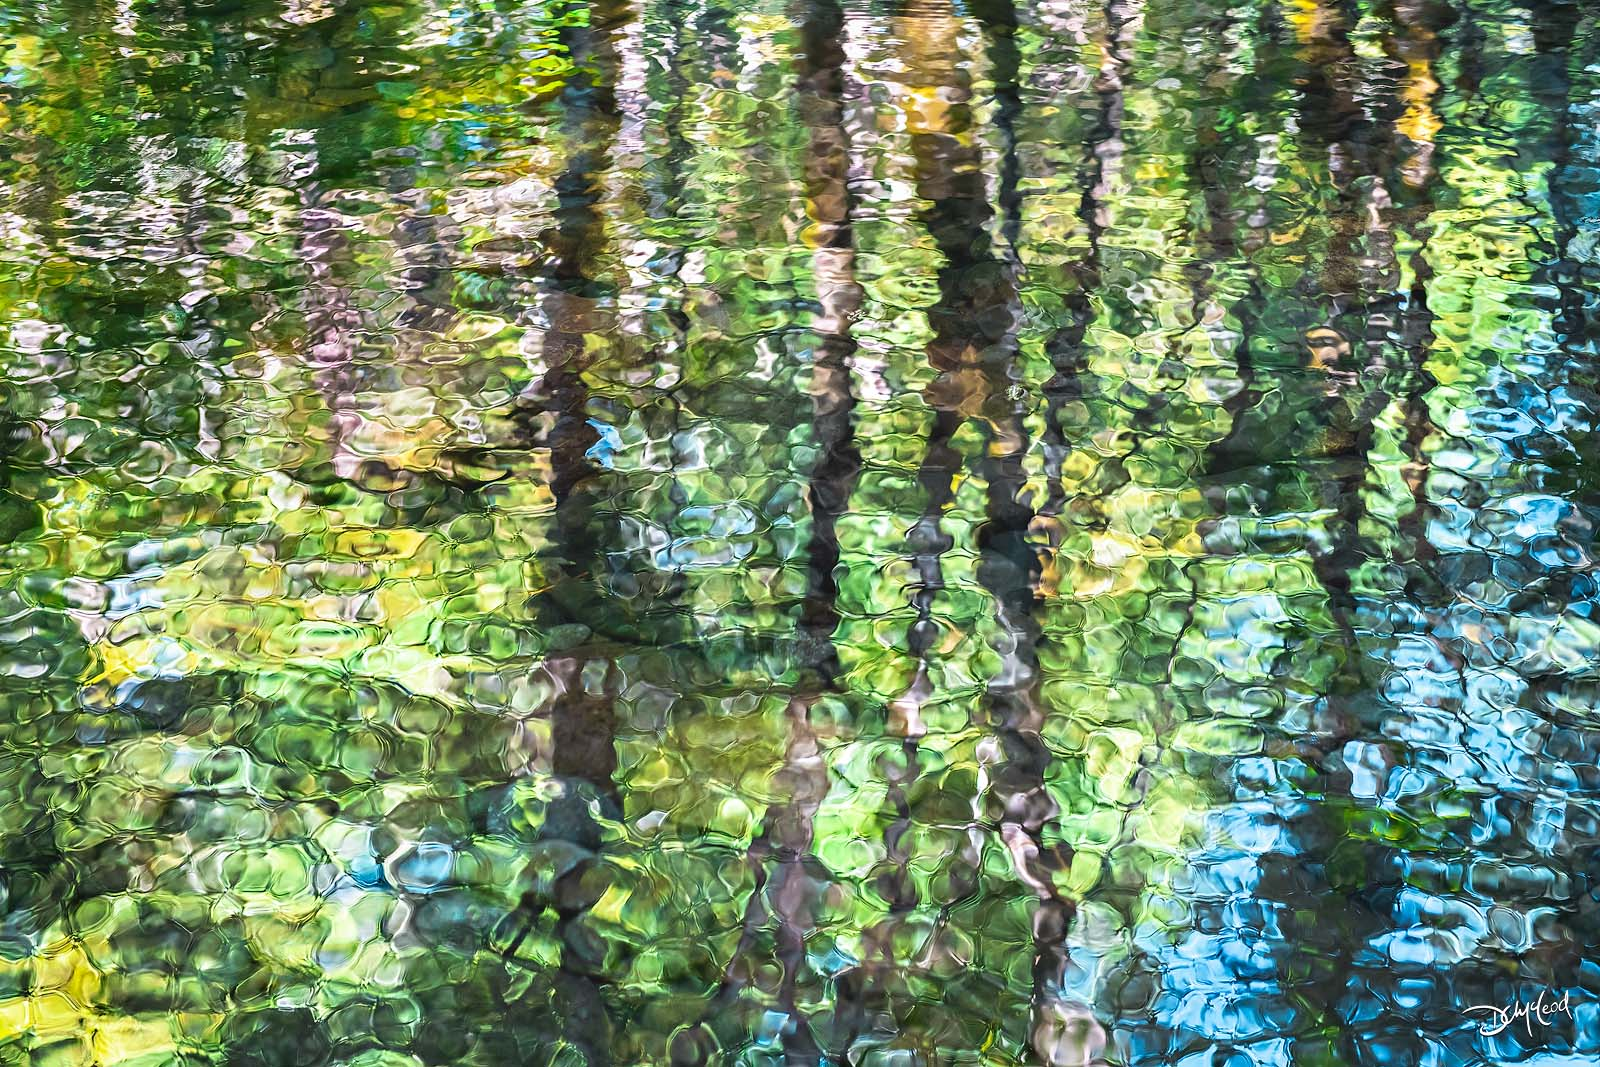 The green and blue reflection of trees and sky in the waters of Falls Creek, Washington.